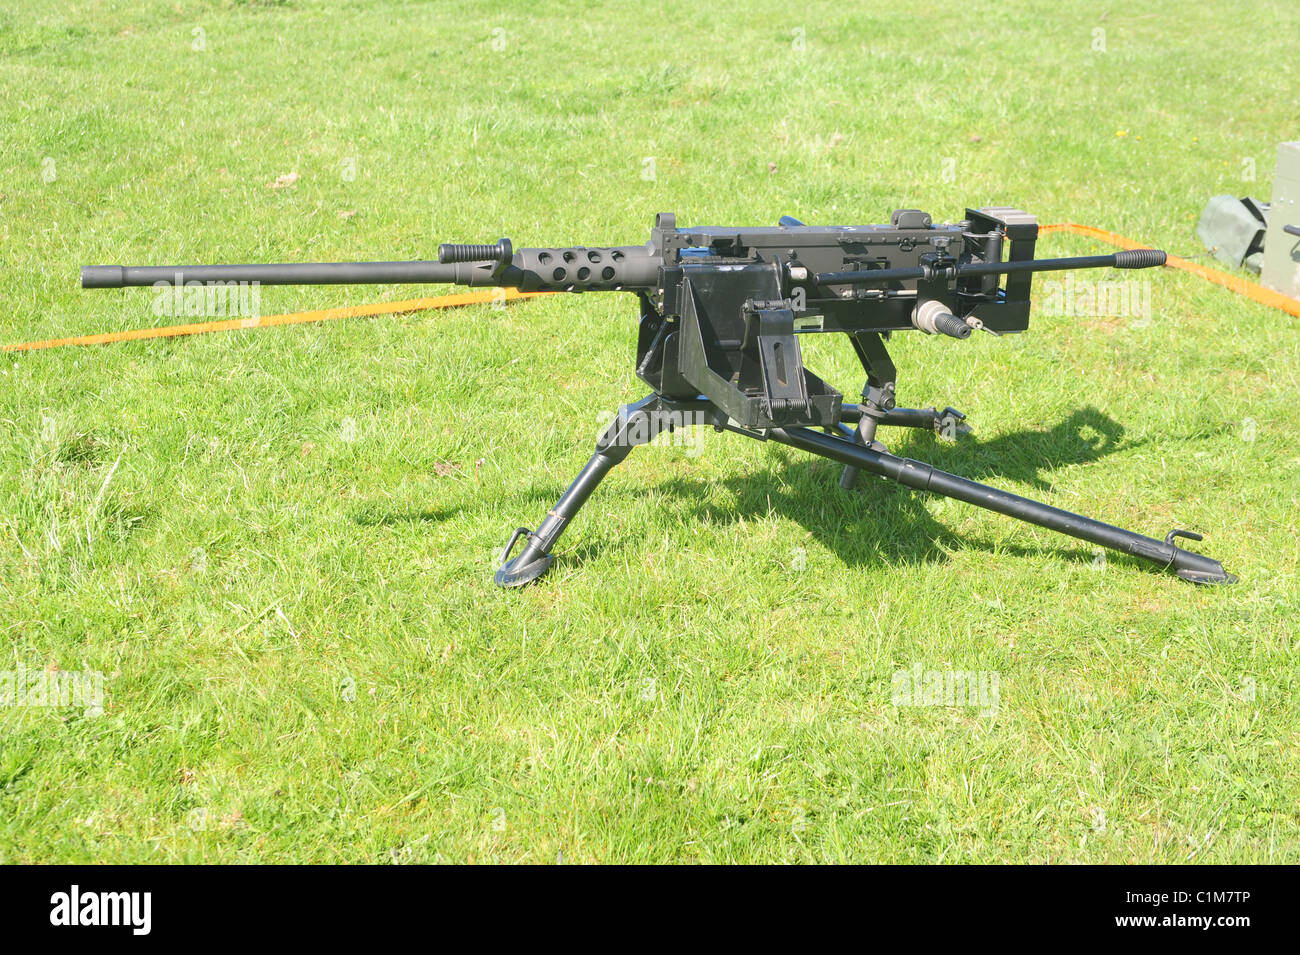 12 7mm Machine Gun Stock Photos & 12 7mm Machine Gun Stock Images